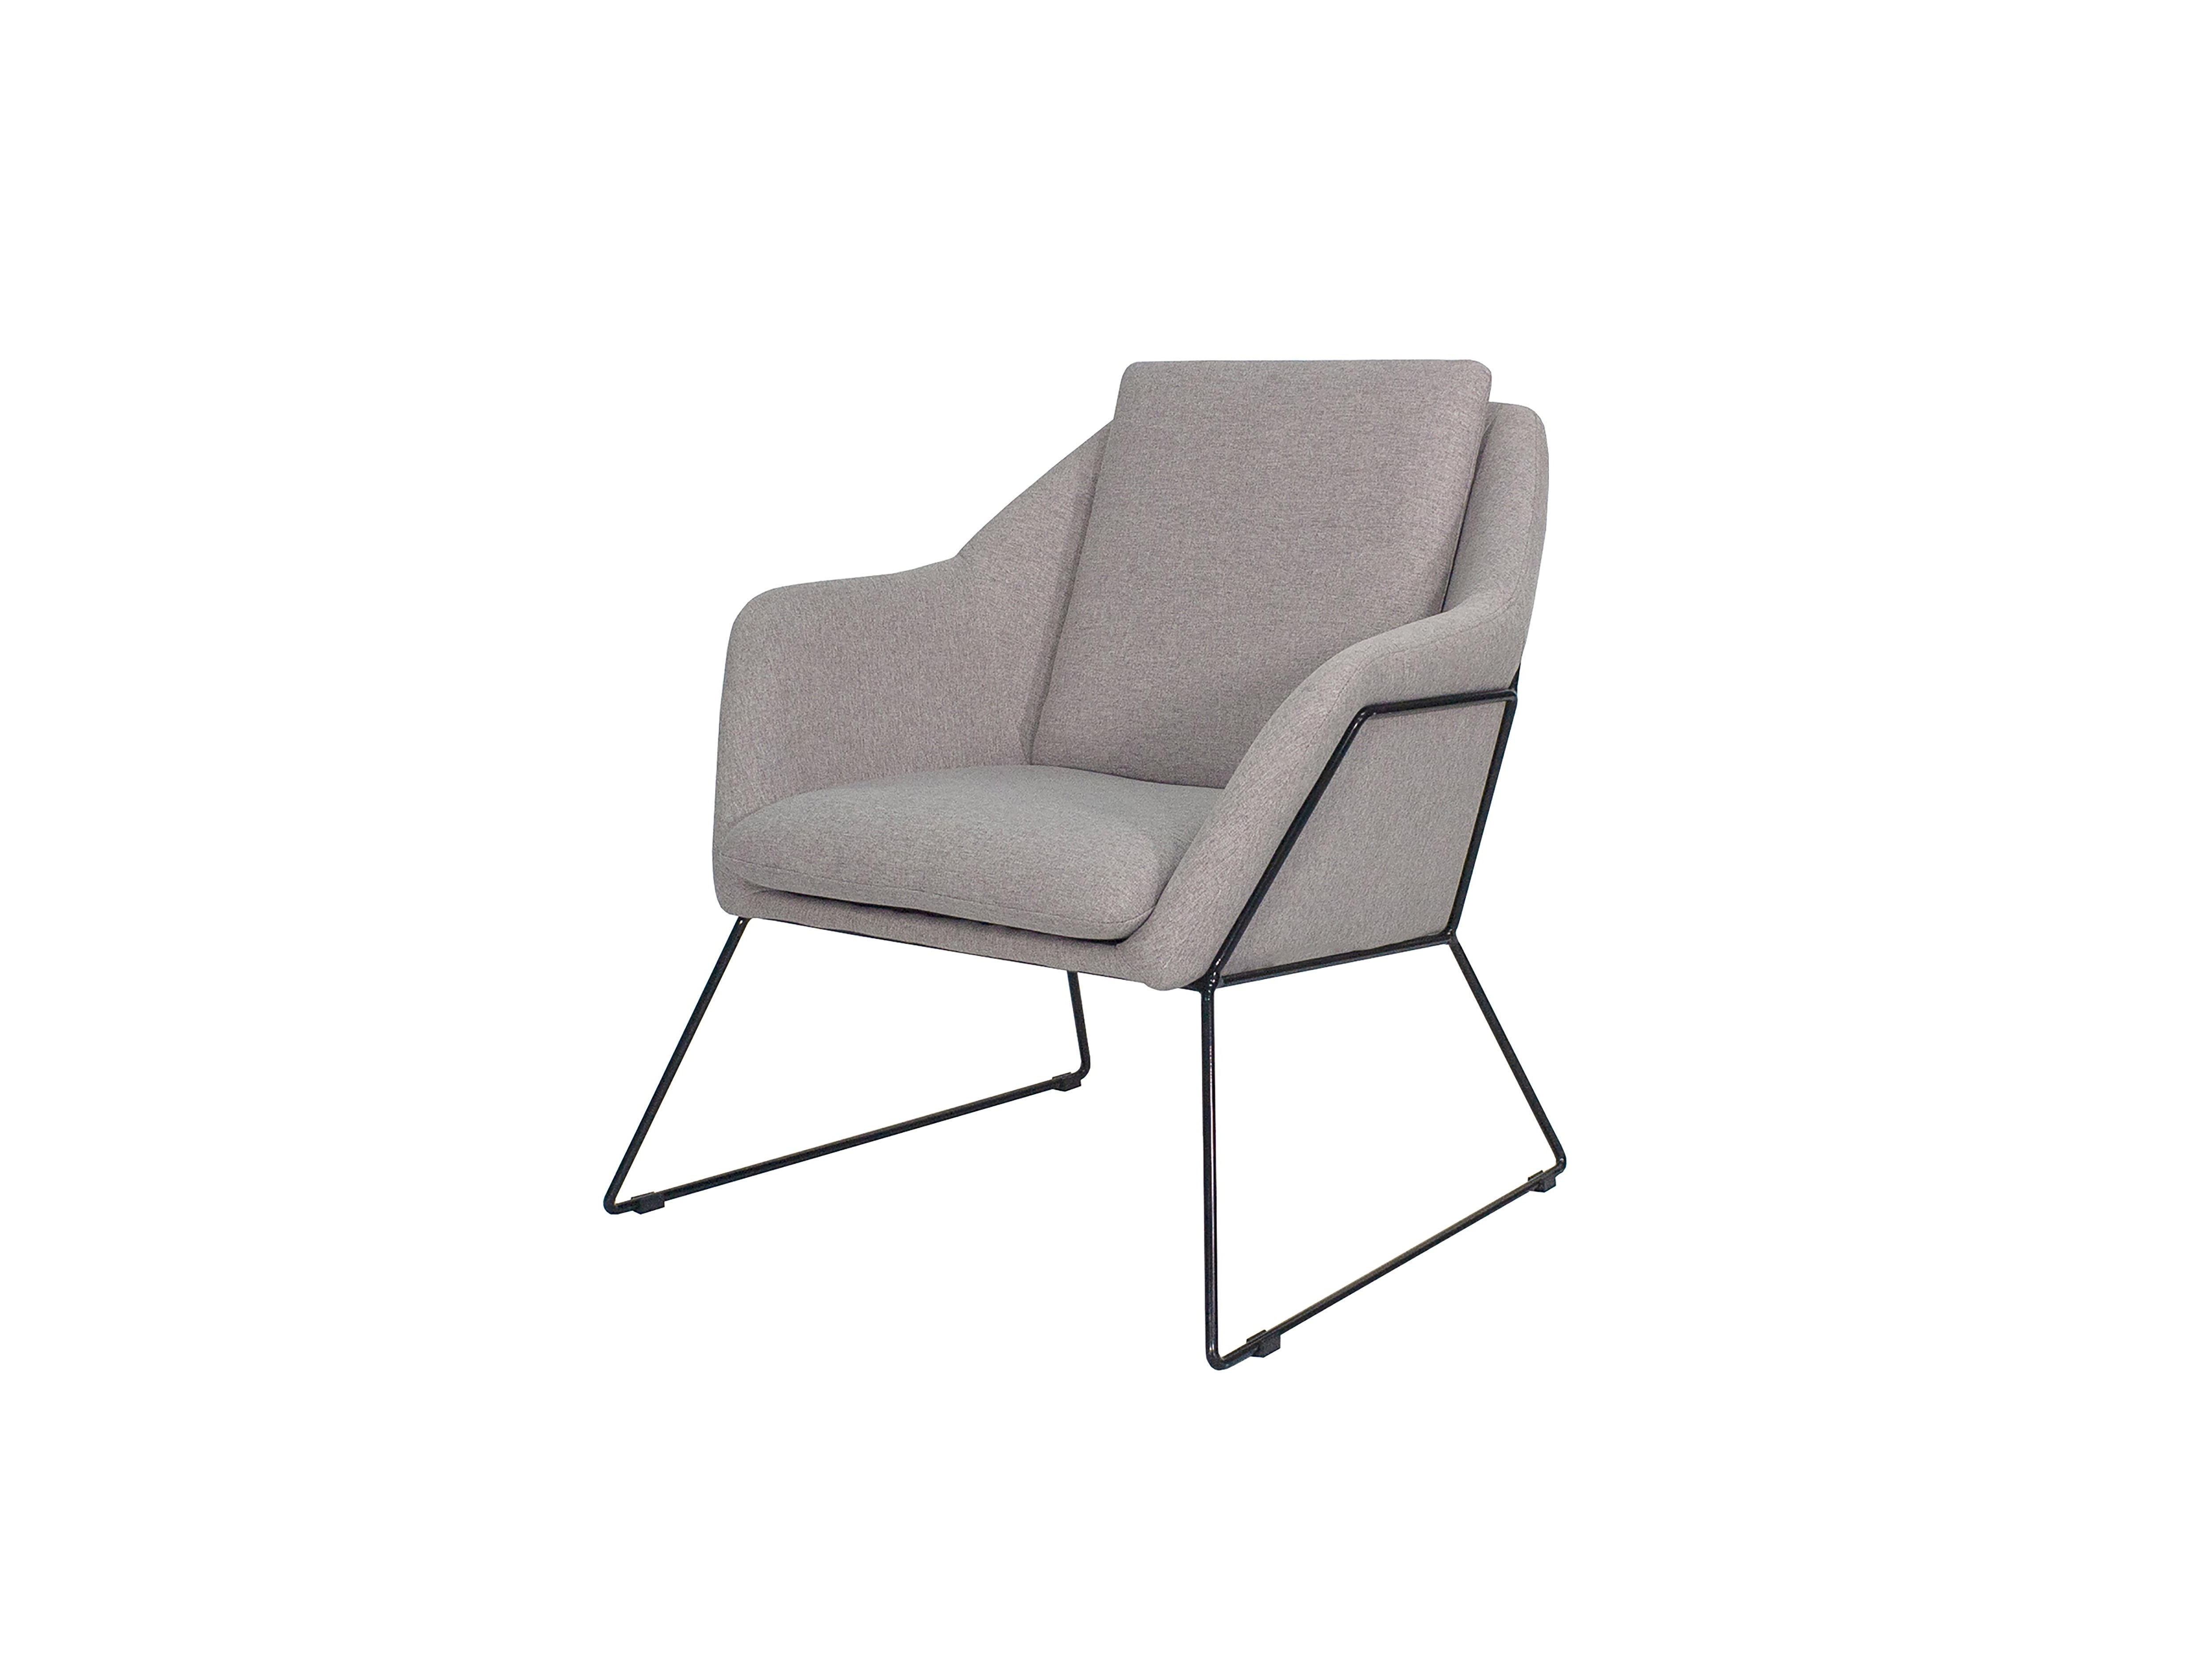 Hospitality Soft Seating Tetra Chair